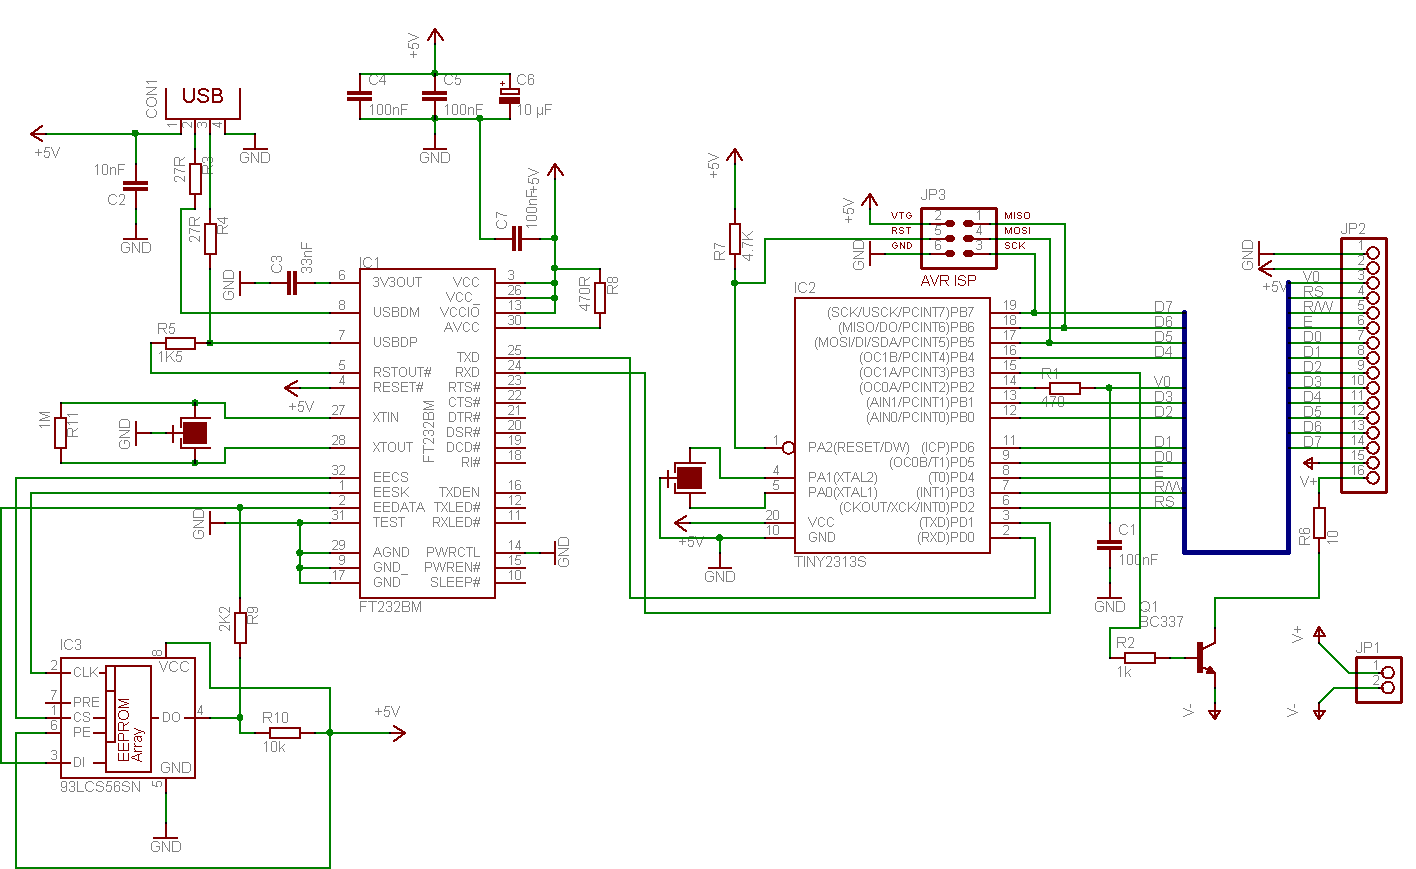 usb interface for parallel lcds USB to Serial Schematic click to enlarge